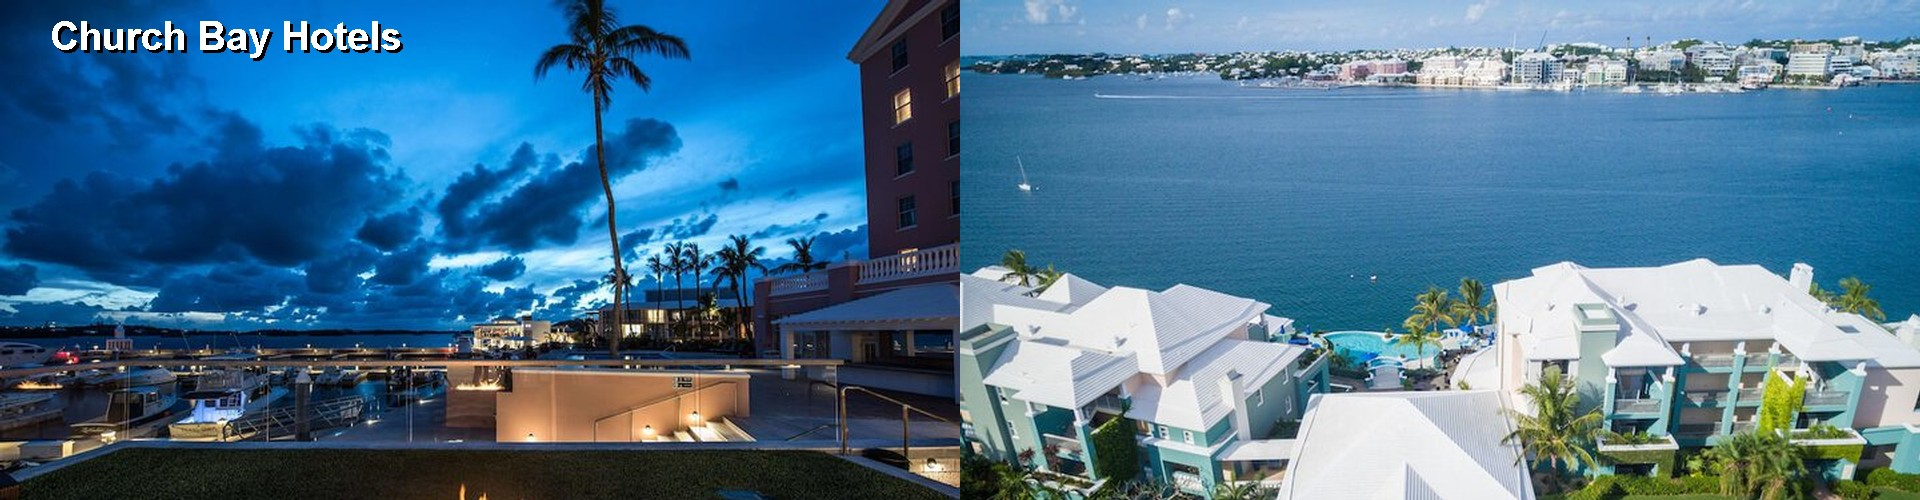 5 Best Hotels near Church Bay